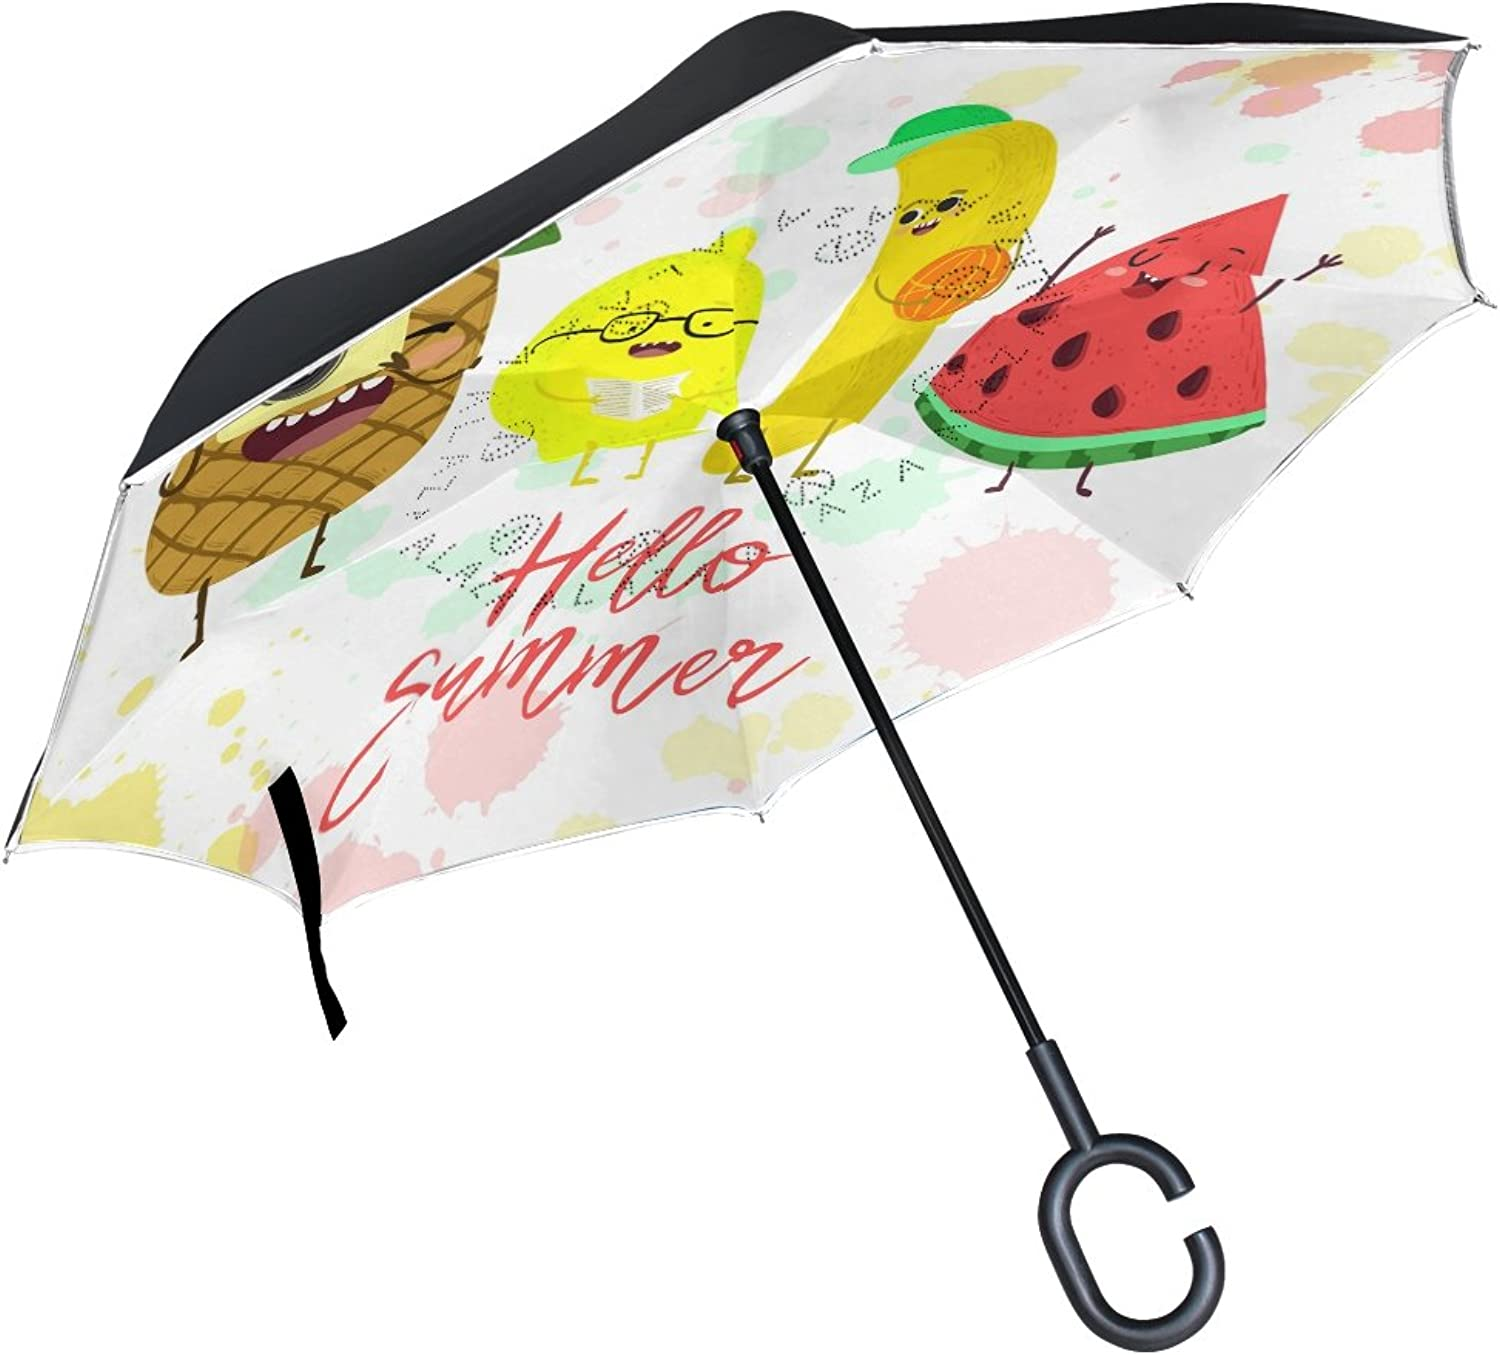 FOLPPLY Ingreened Umbrella Hello Summer Cute Fruit Pineapple Design,Double Layer Reverse Umbrella Waterproof for Car Rain Outdoor with CShaped Handle